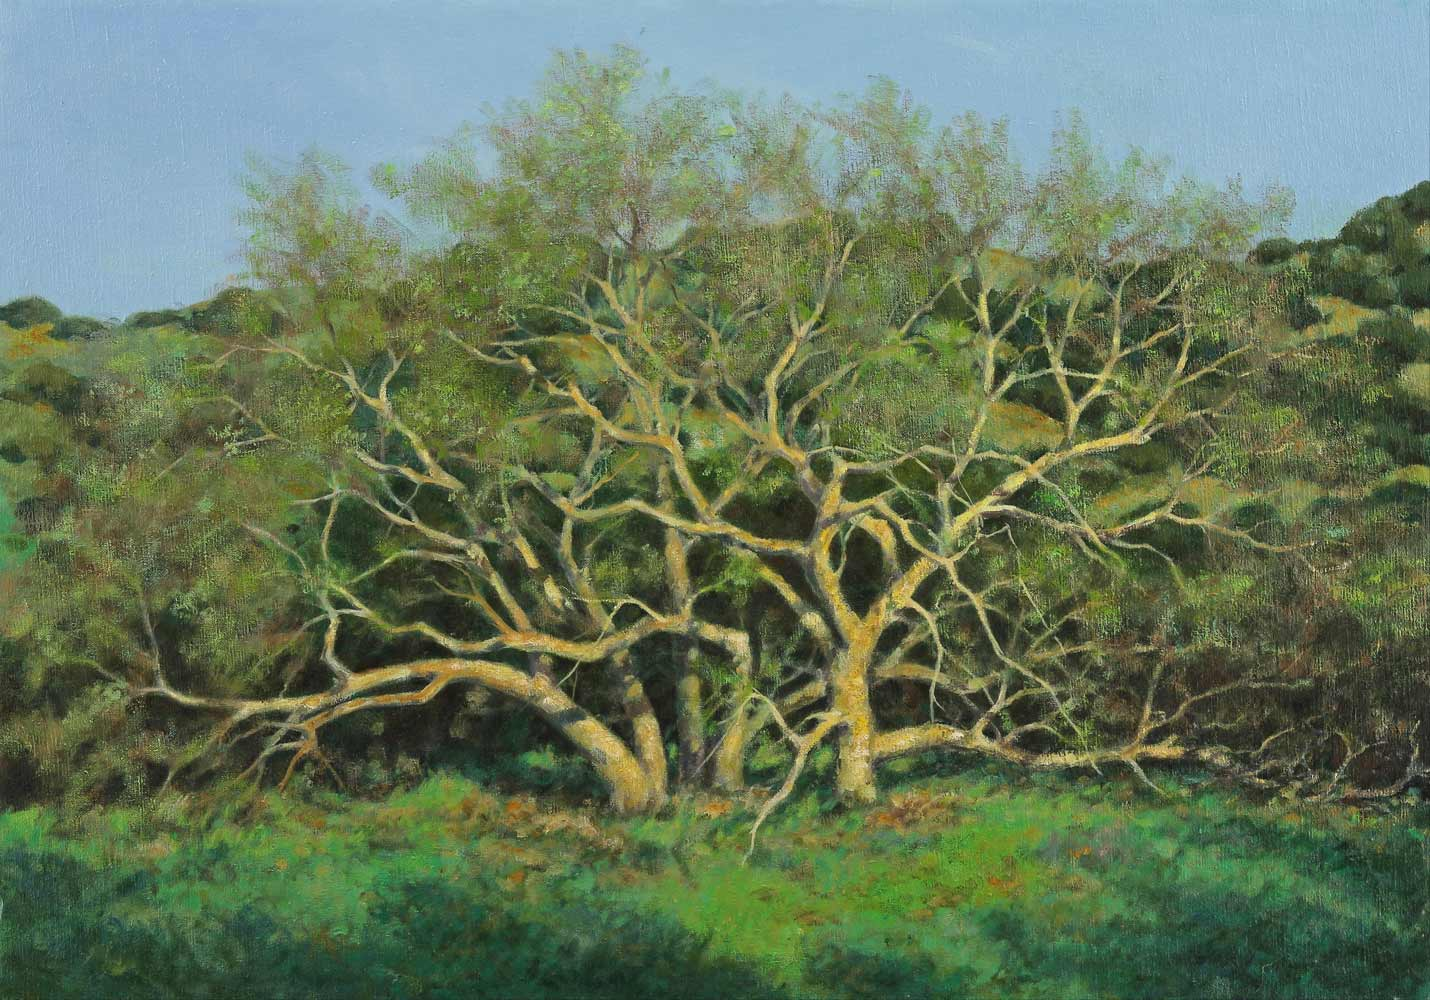 Budding Sycamores, painting by Jim Promessi